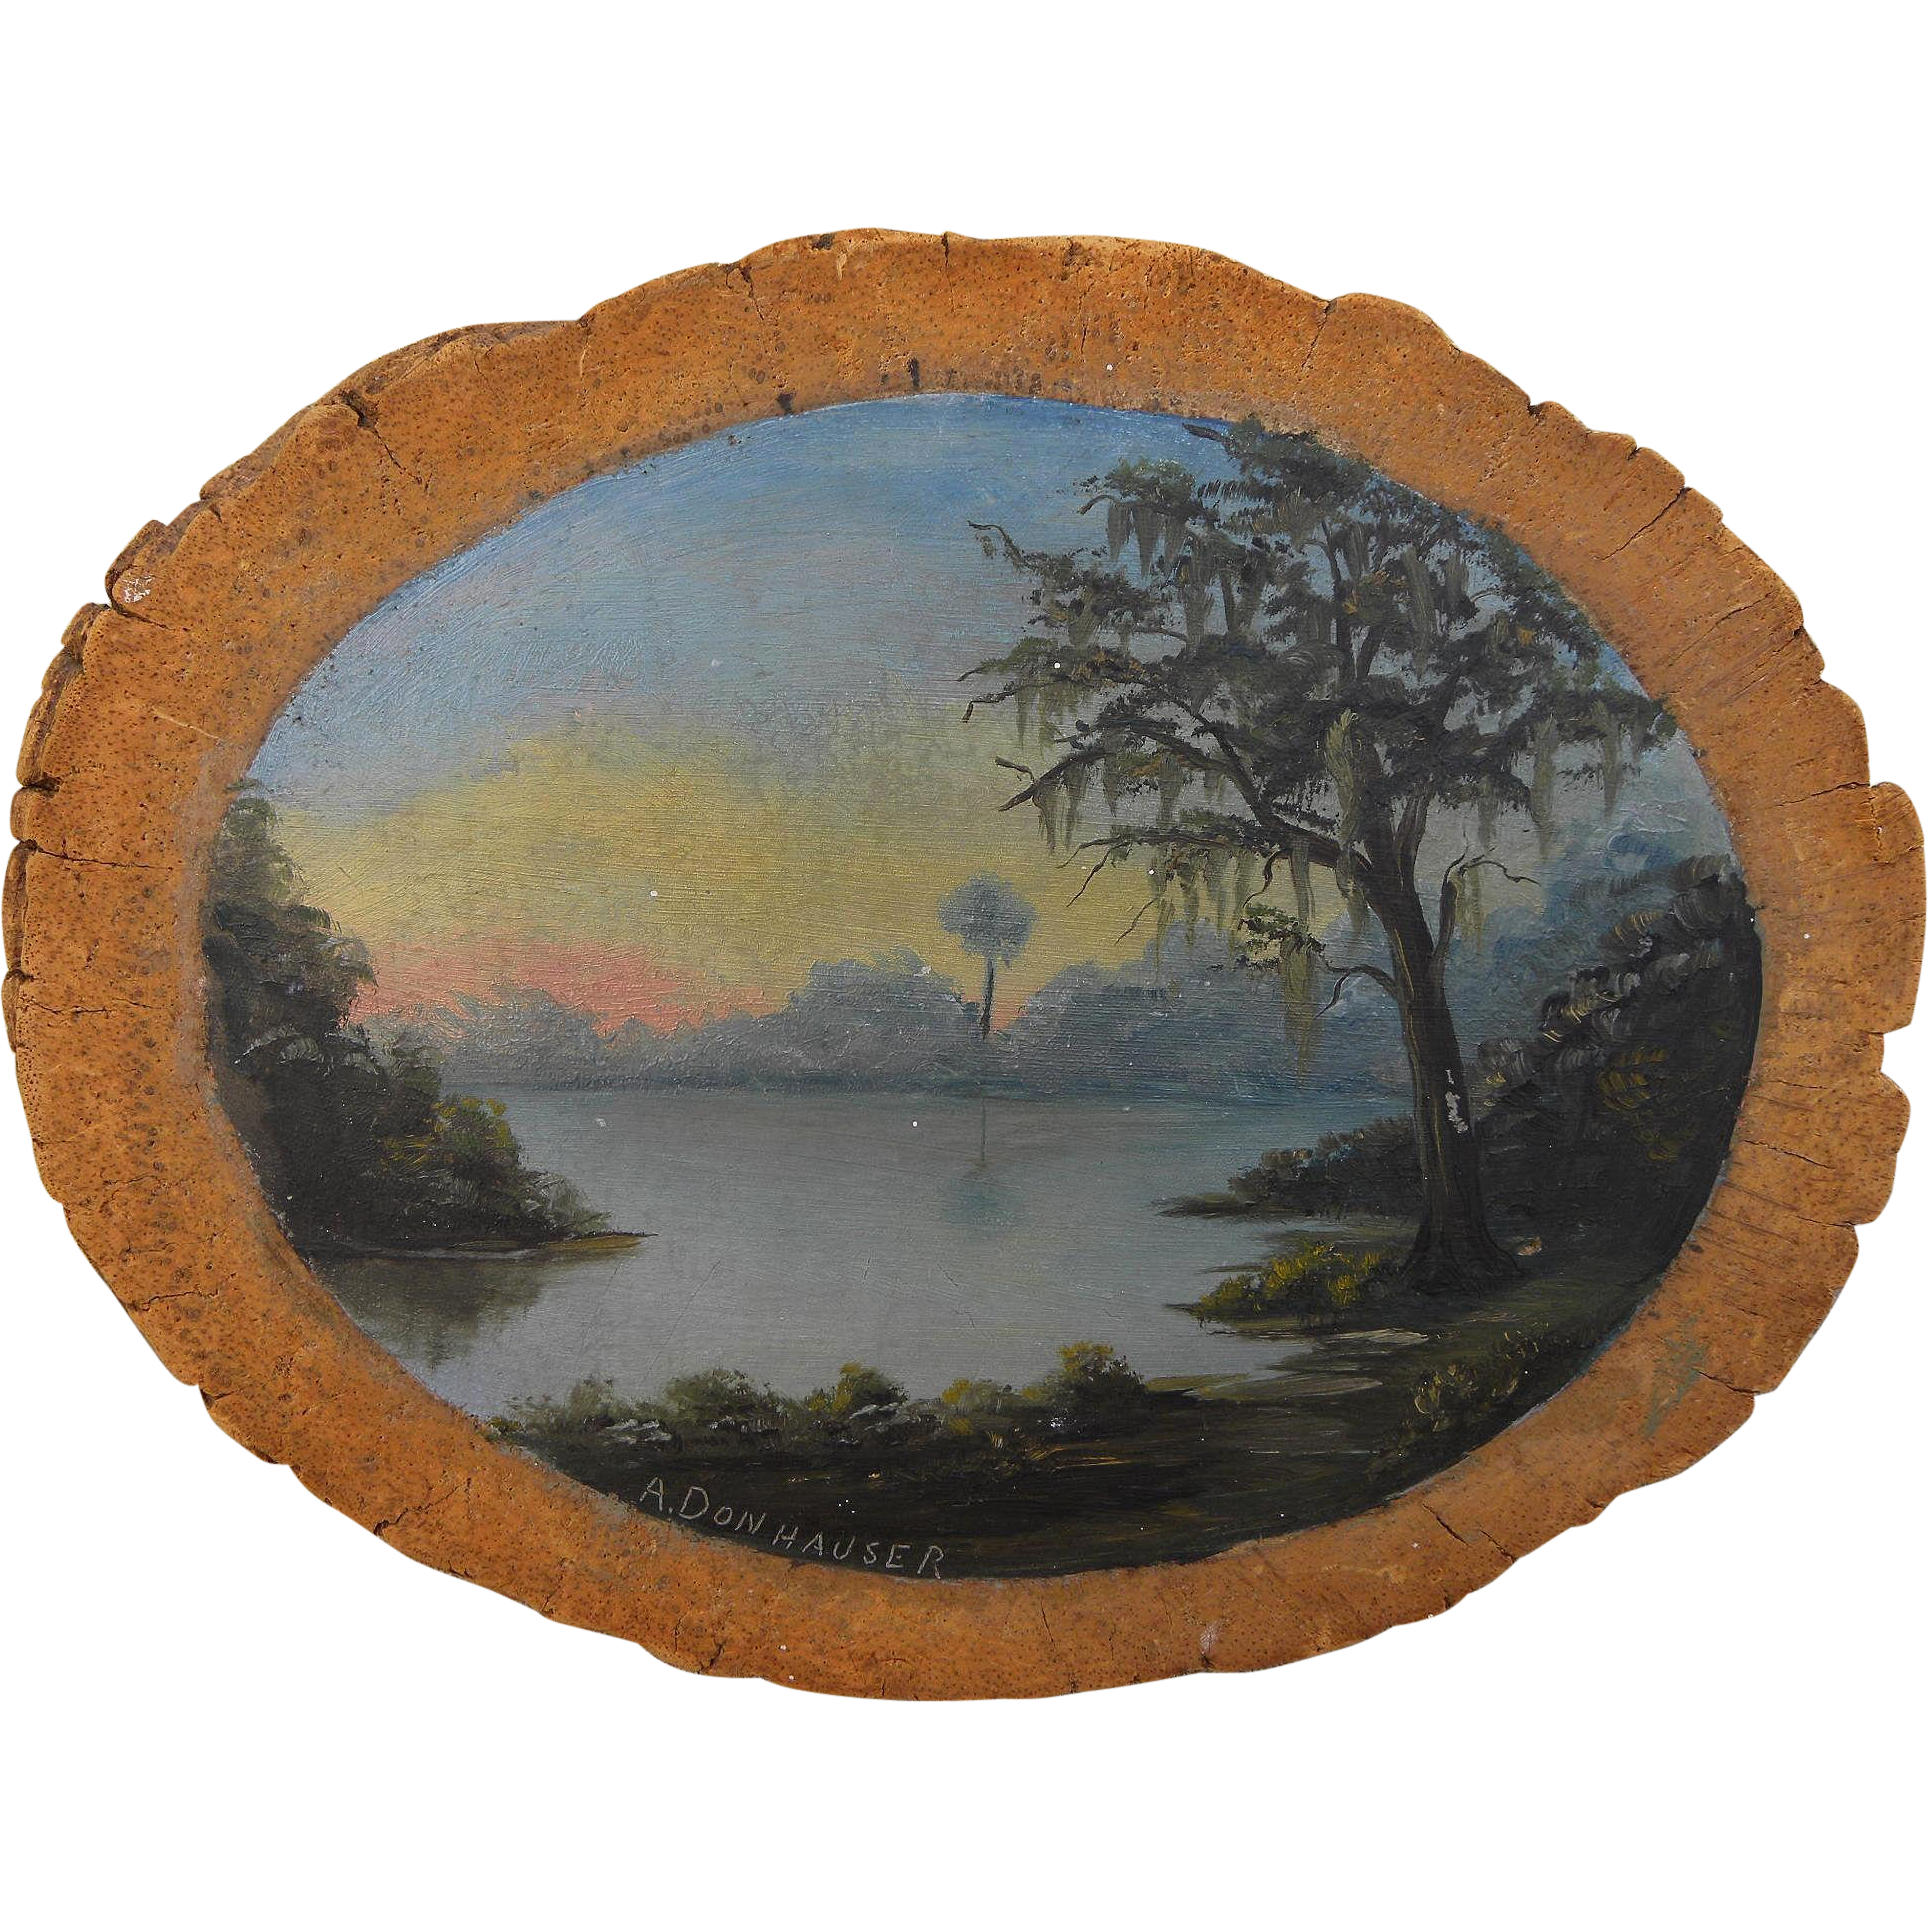 Southern American art painting of moss-laden tree by swamp or lake signed A. Donhauser